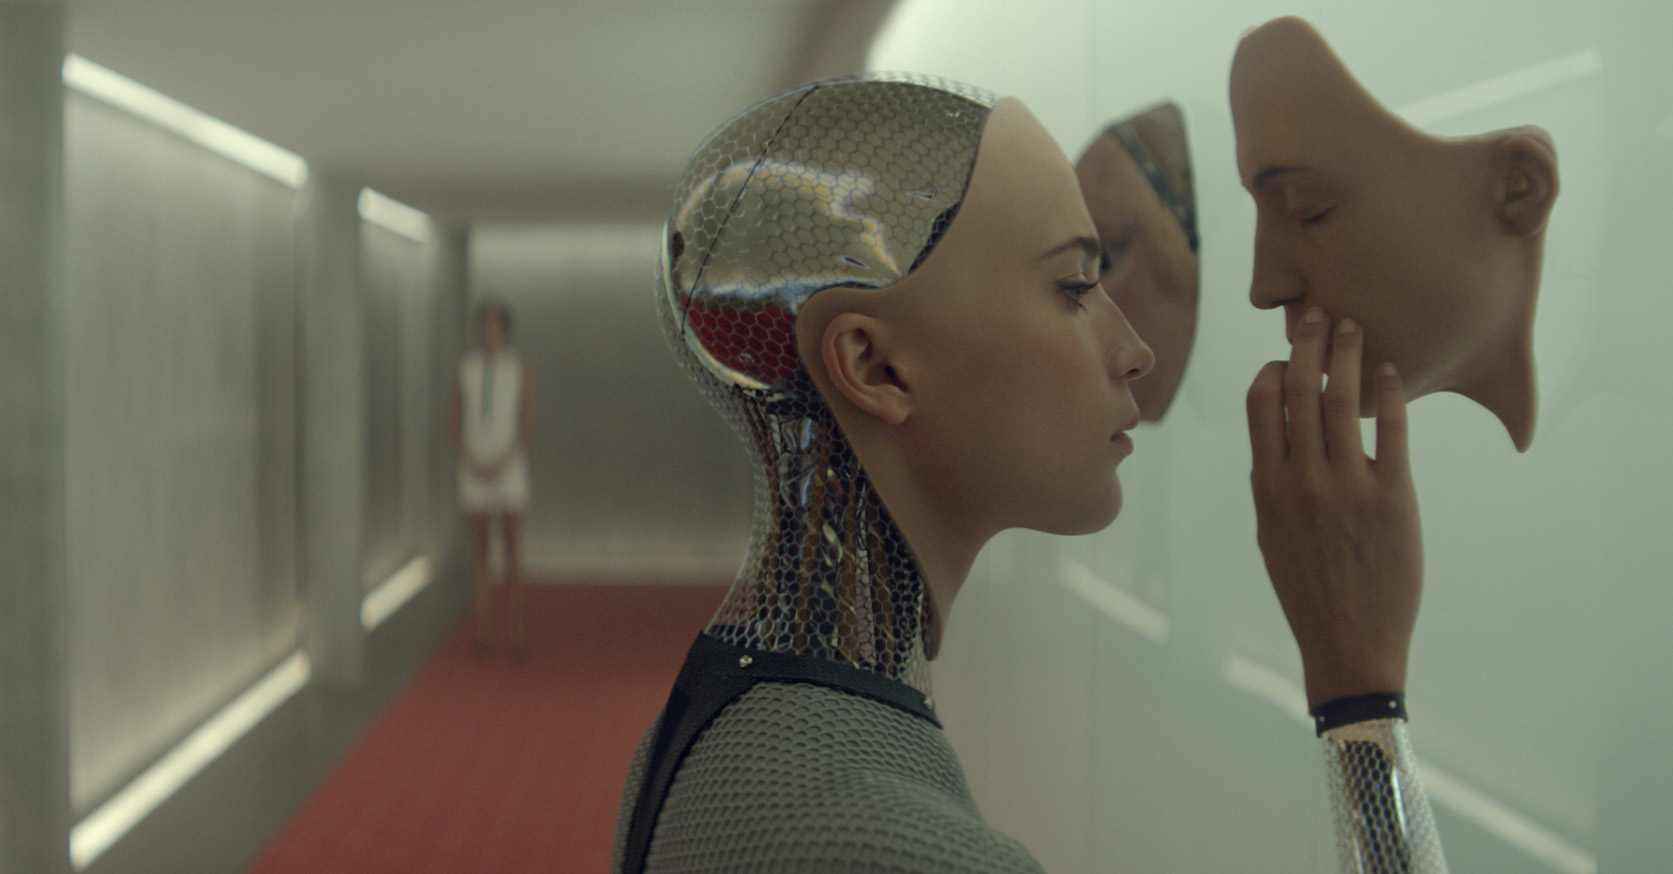 Alicia Vikander as Ava in 'Ex Machina', written and directed by Alex Garland.